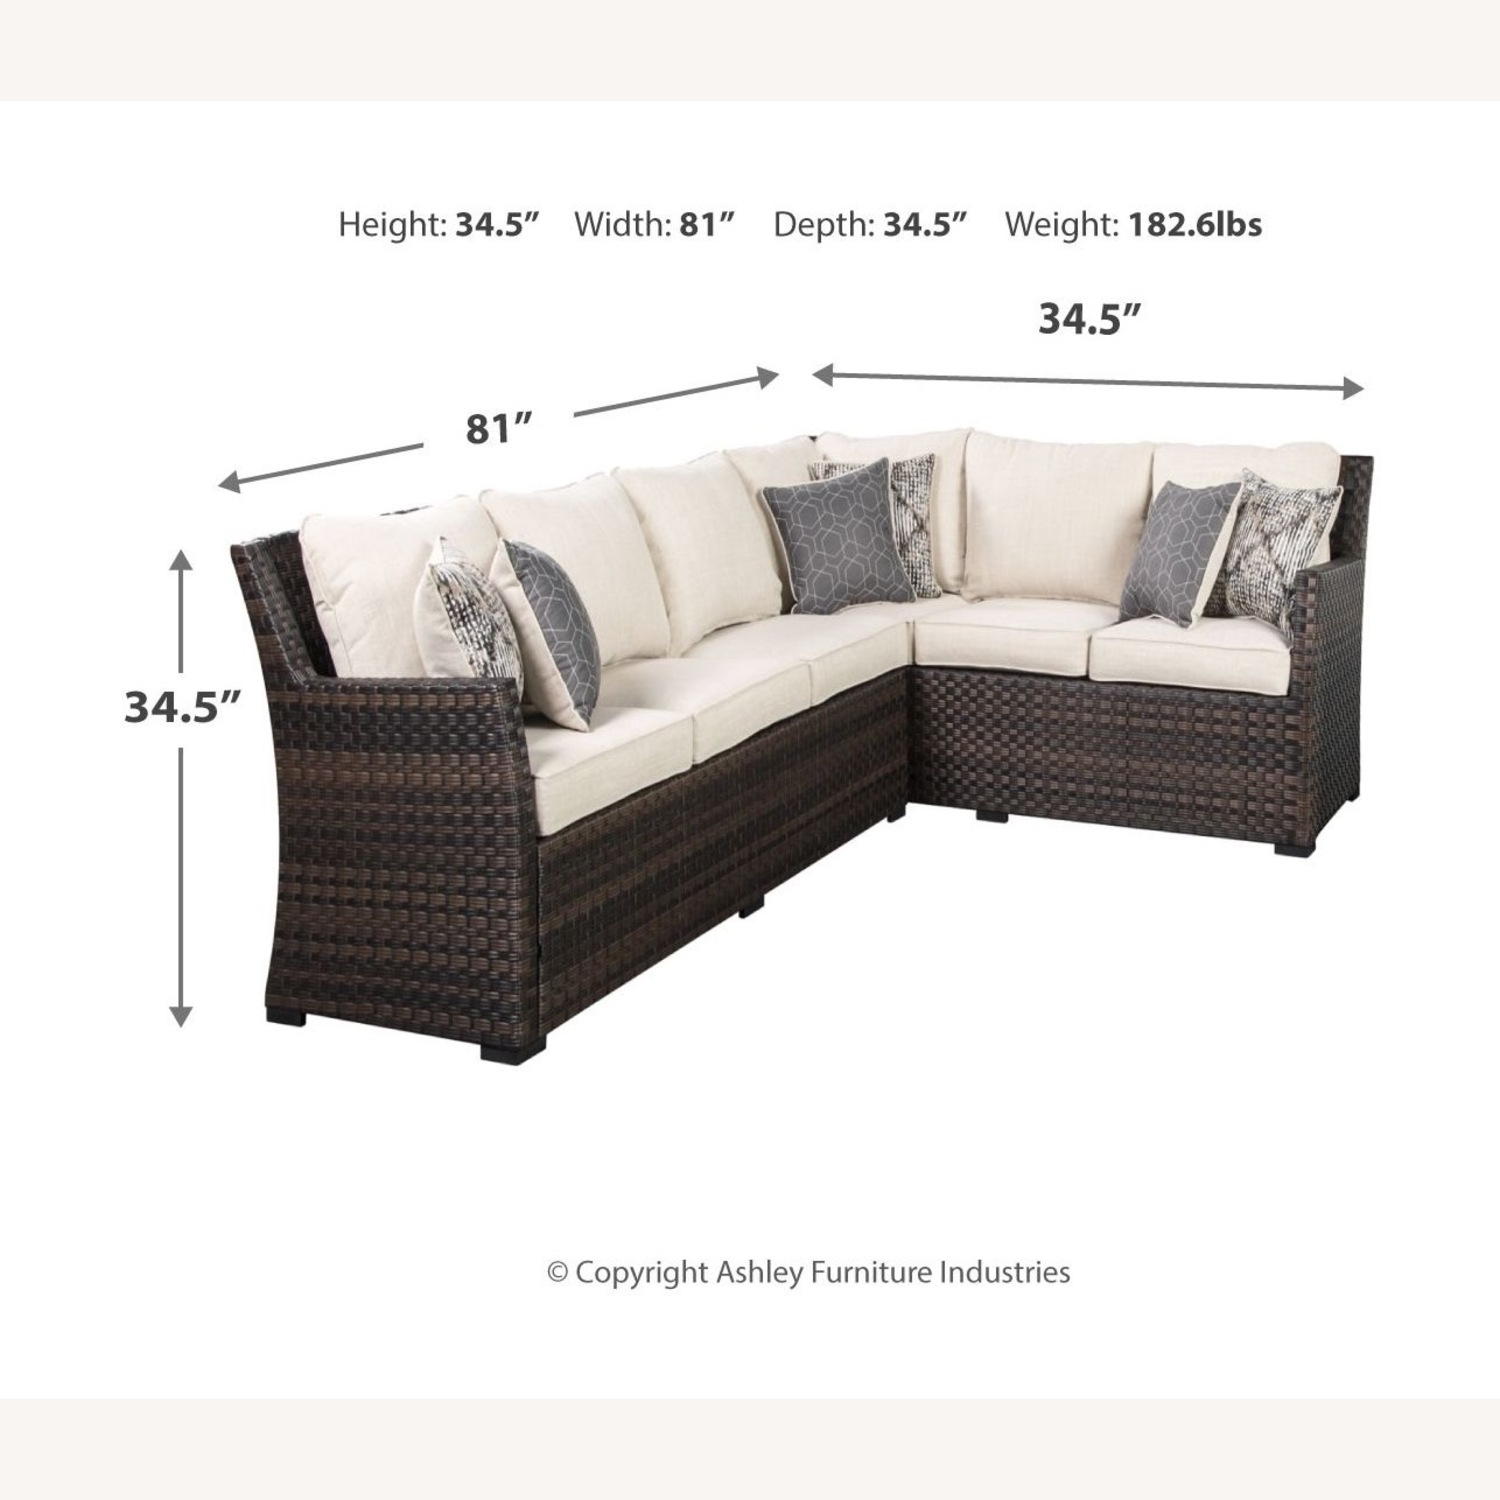 Ashley Furniture Resin Wicker Sectional - image-3